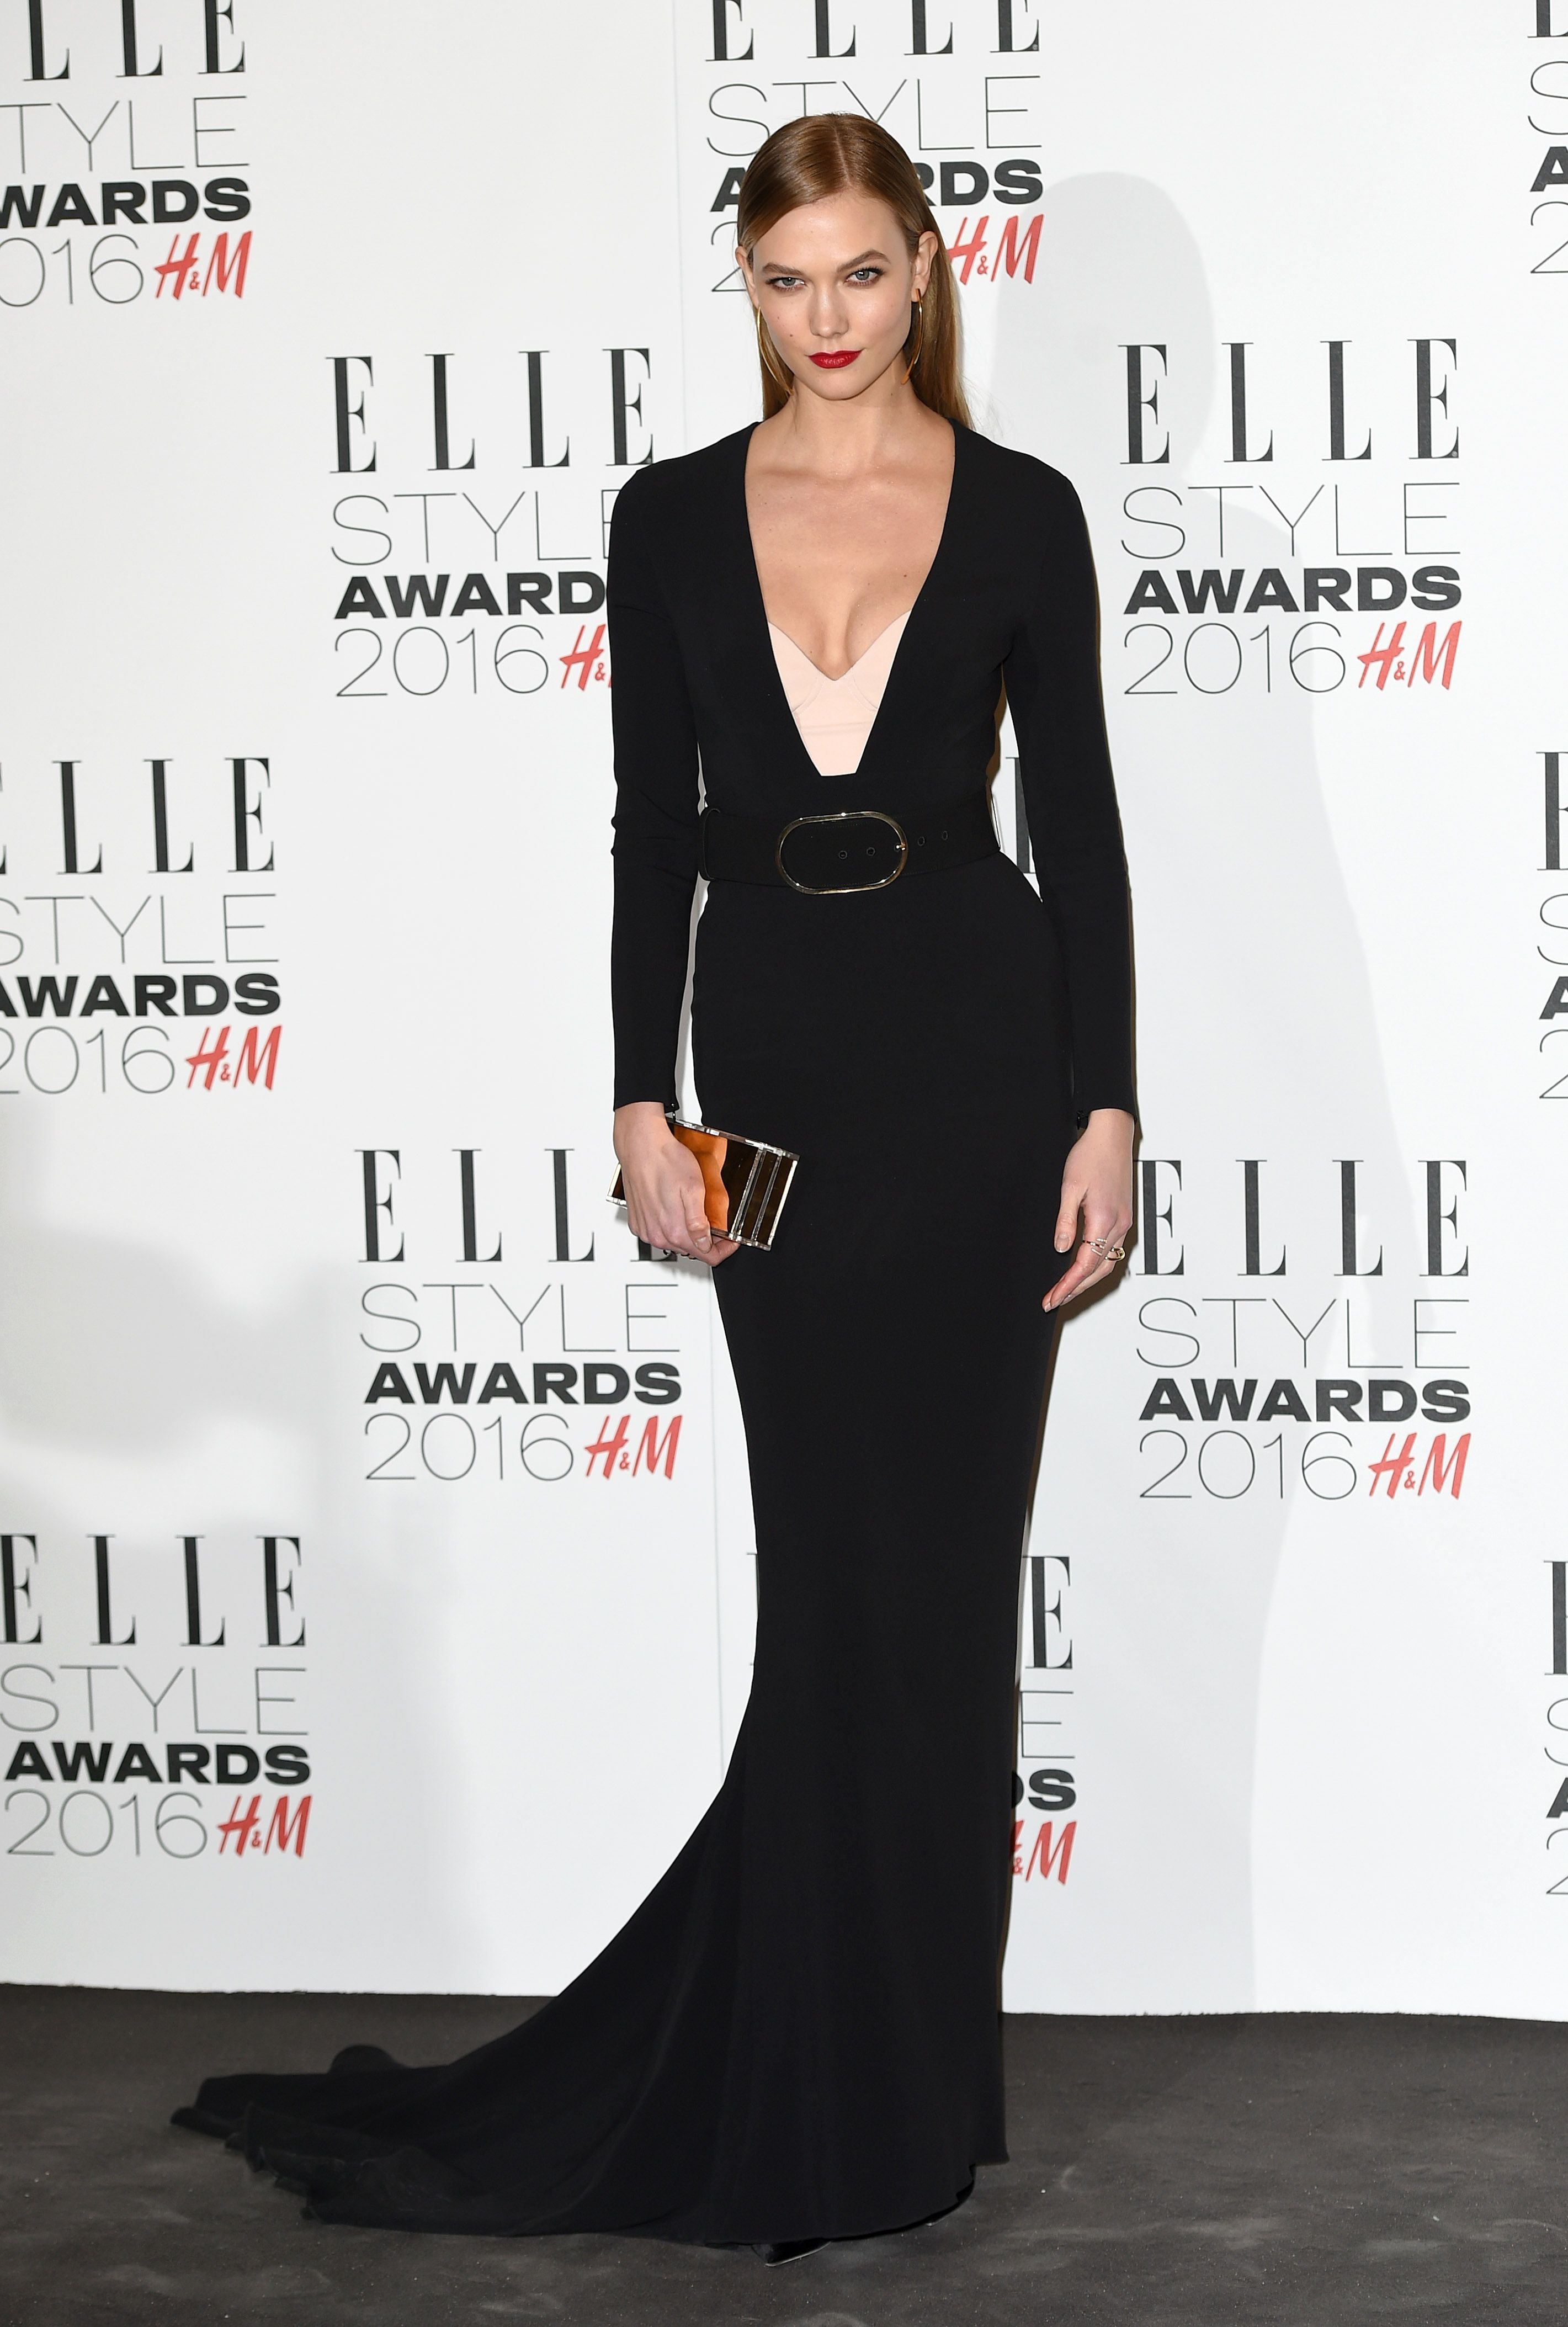 See All the Best-Dressed Models at Last Night's Elle' Awards